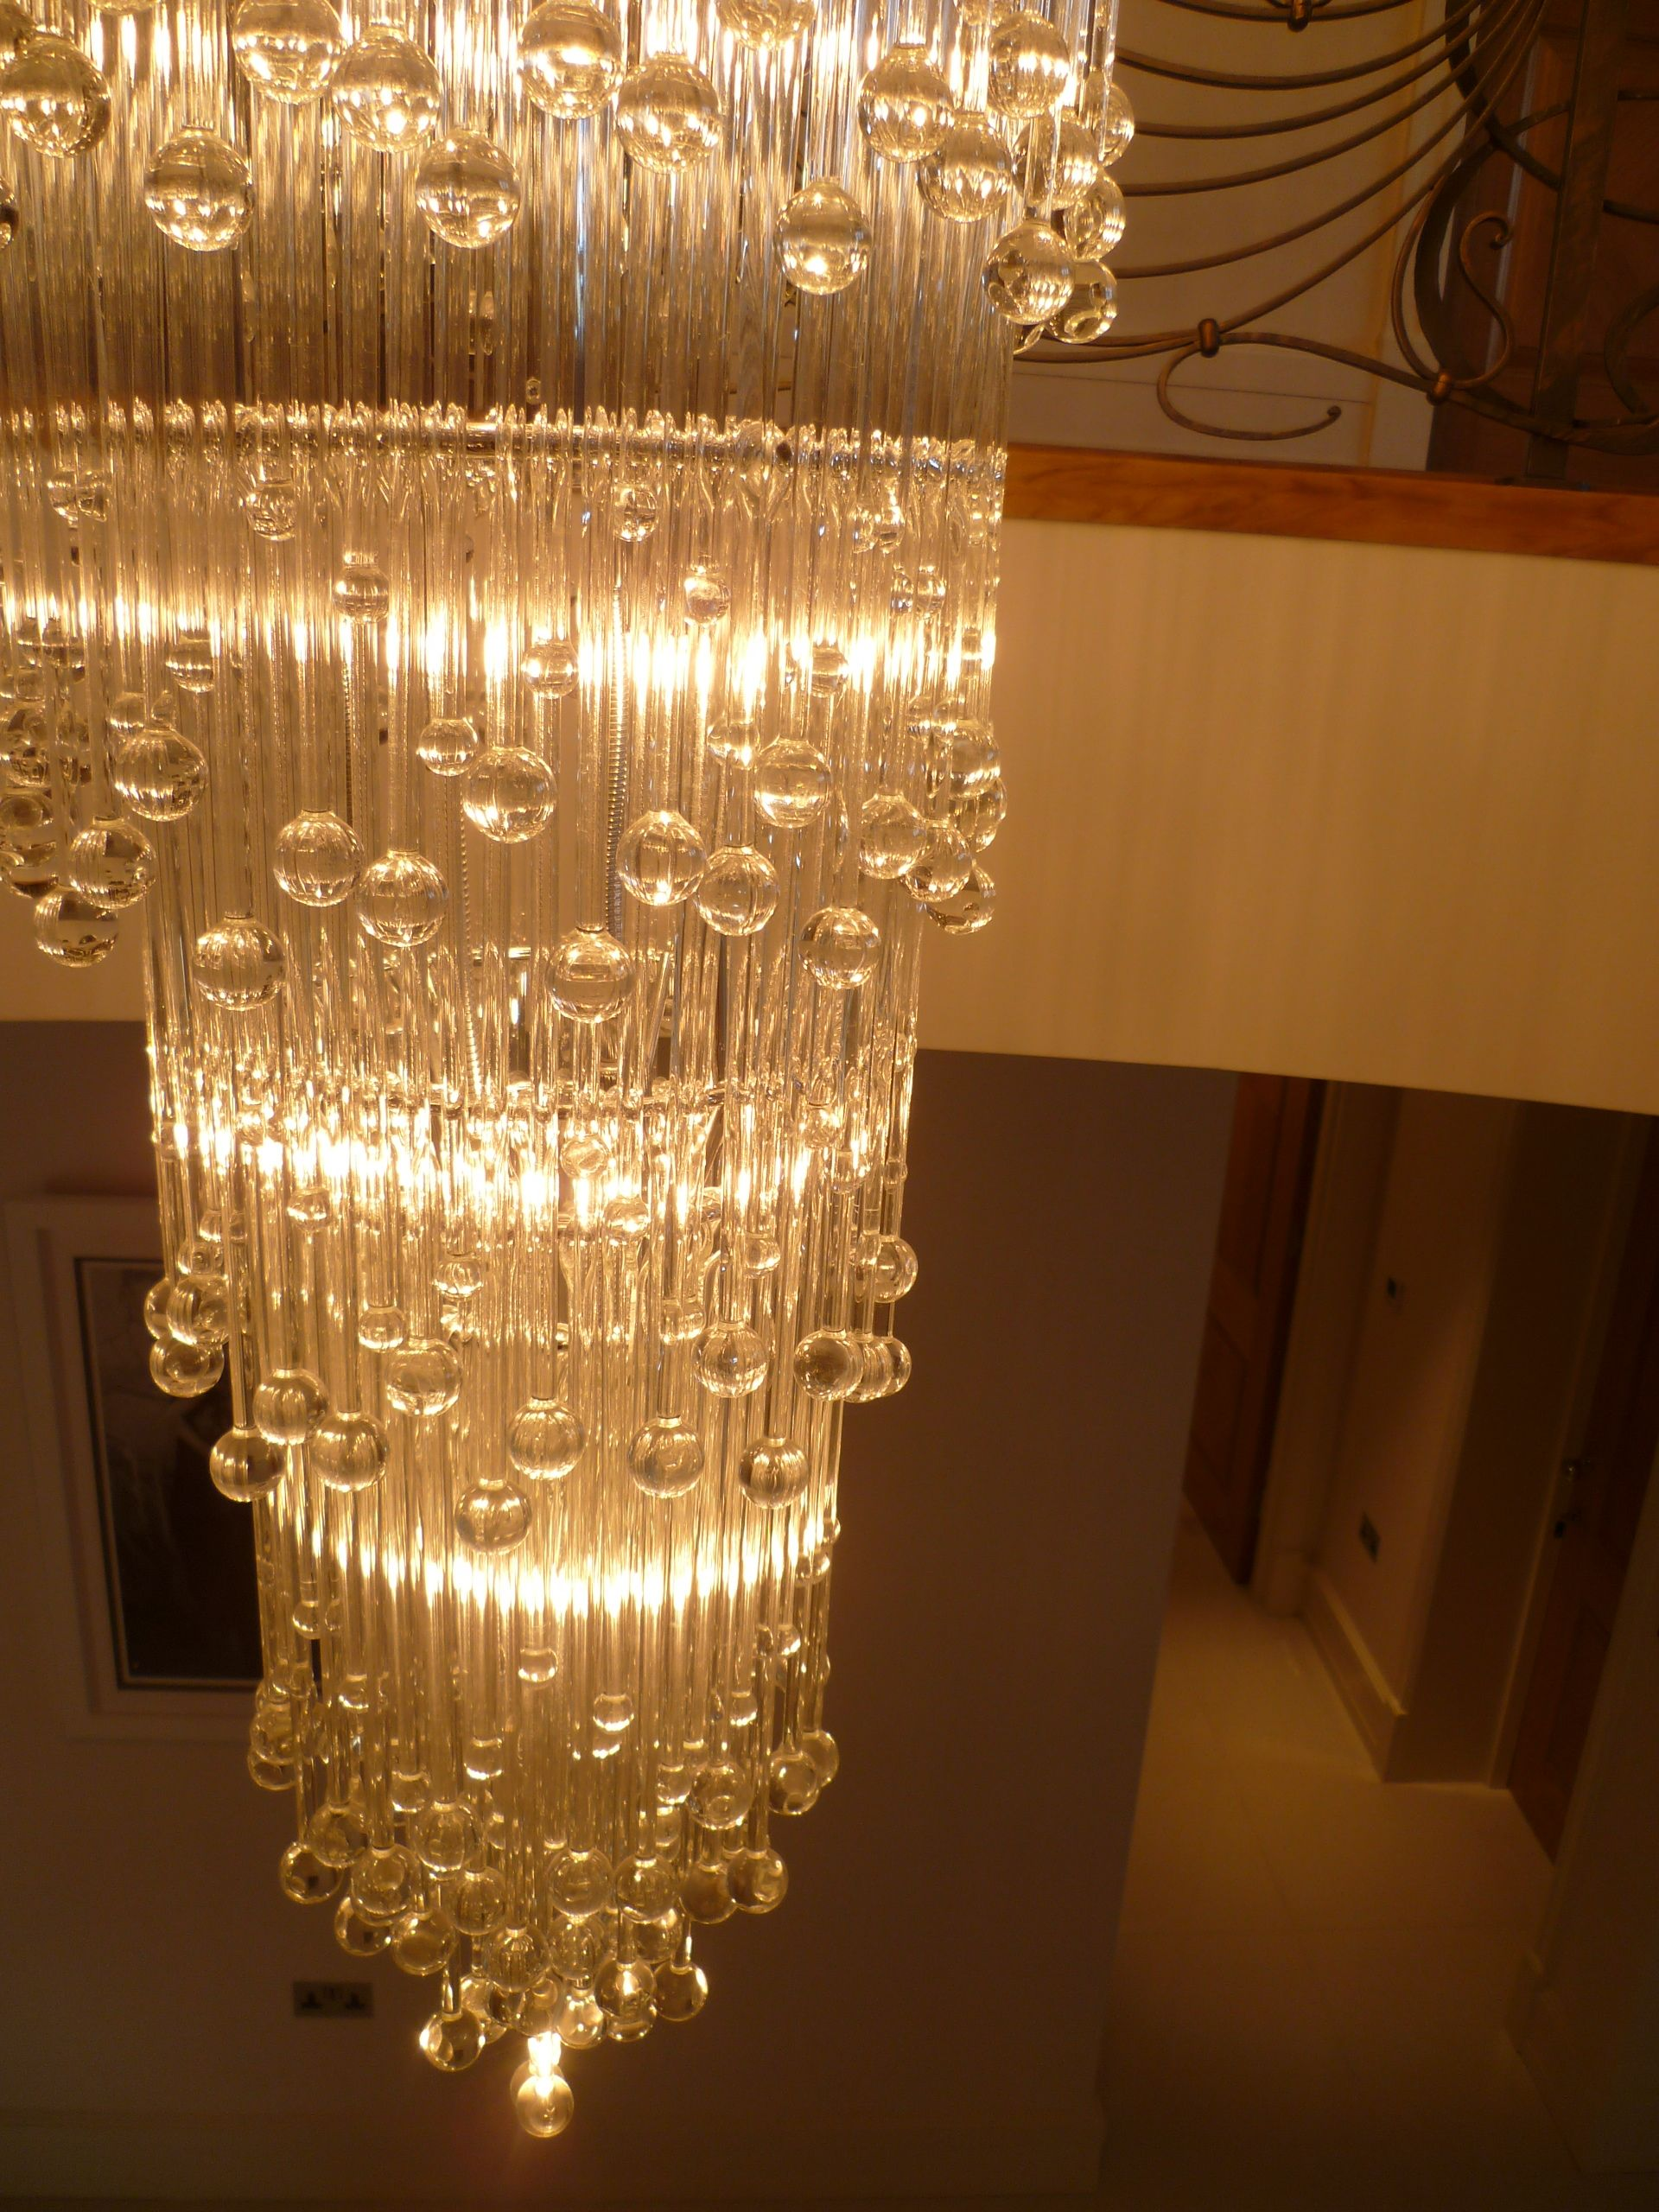 Bespoke glass chandelier by rocco borghese lampes exquis bespoke glass chandelier by rocco borghese arubaitofo Images